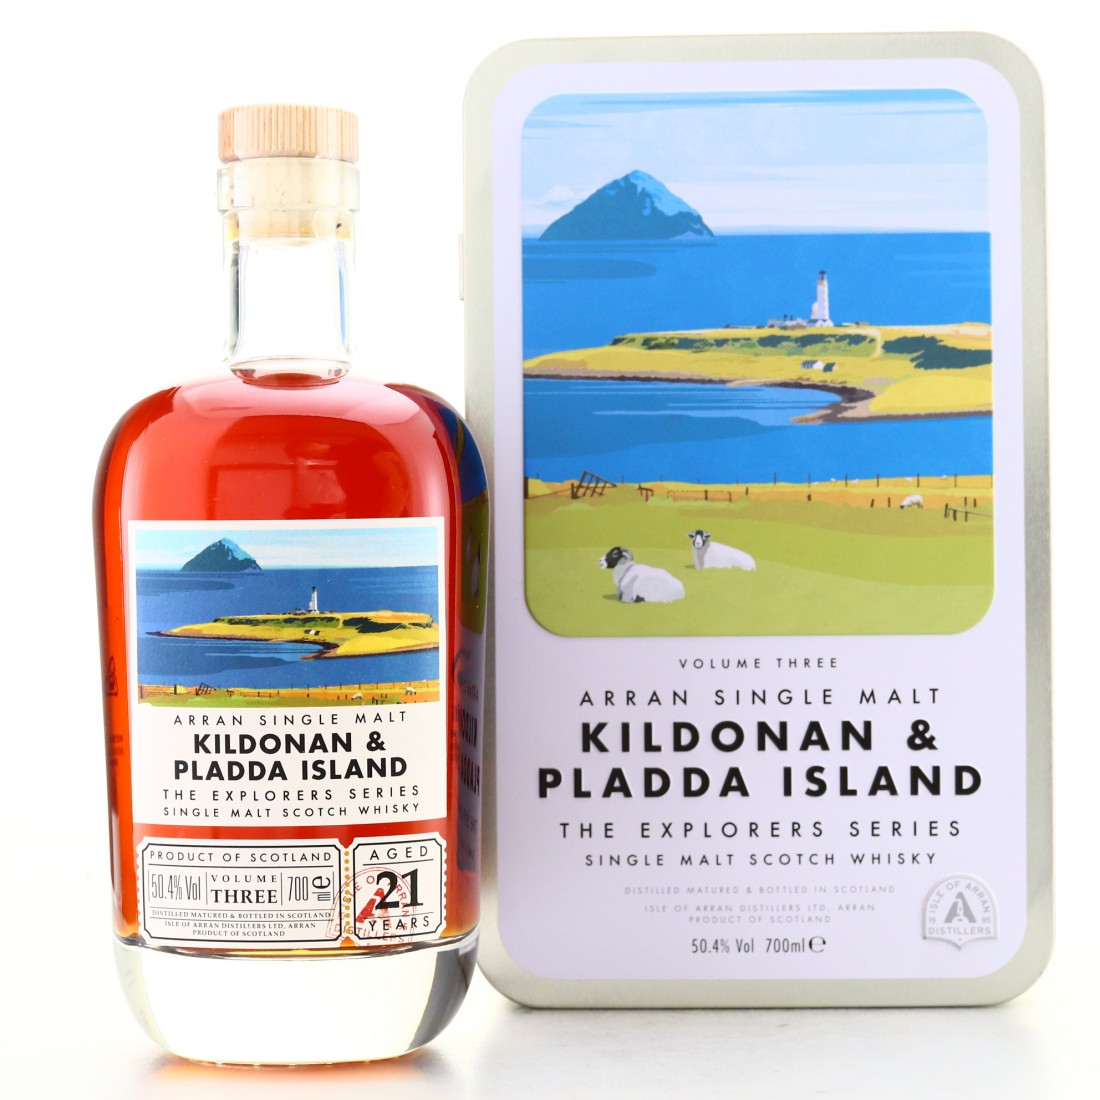 Arran 21 Year Old The Explorers Series Volume 3 / Kildonan and Pladda Island